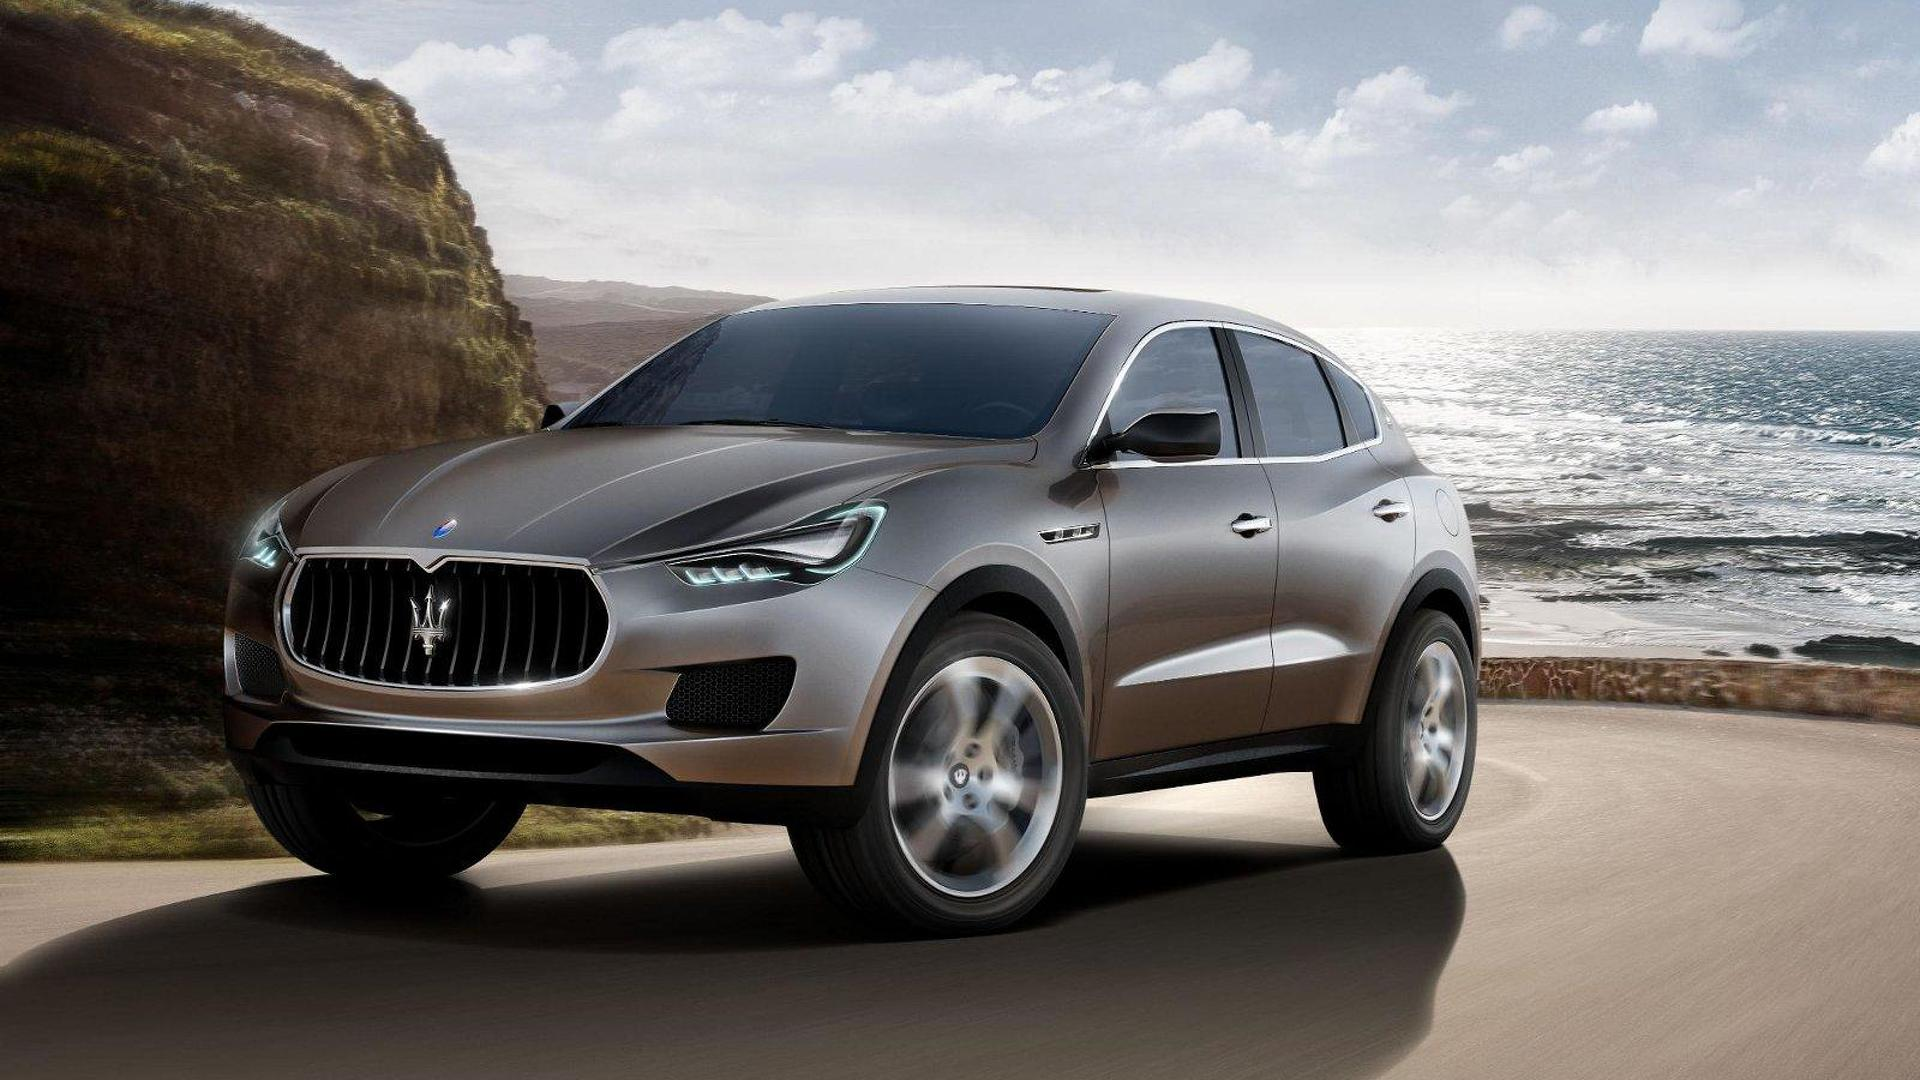 Maserati & Alfa Romeo crossovers to be built in Italy, not Detroit - report